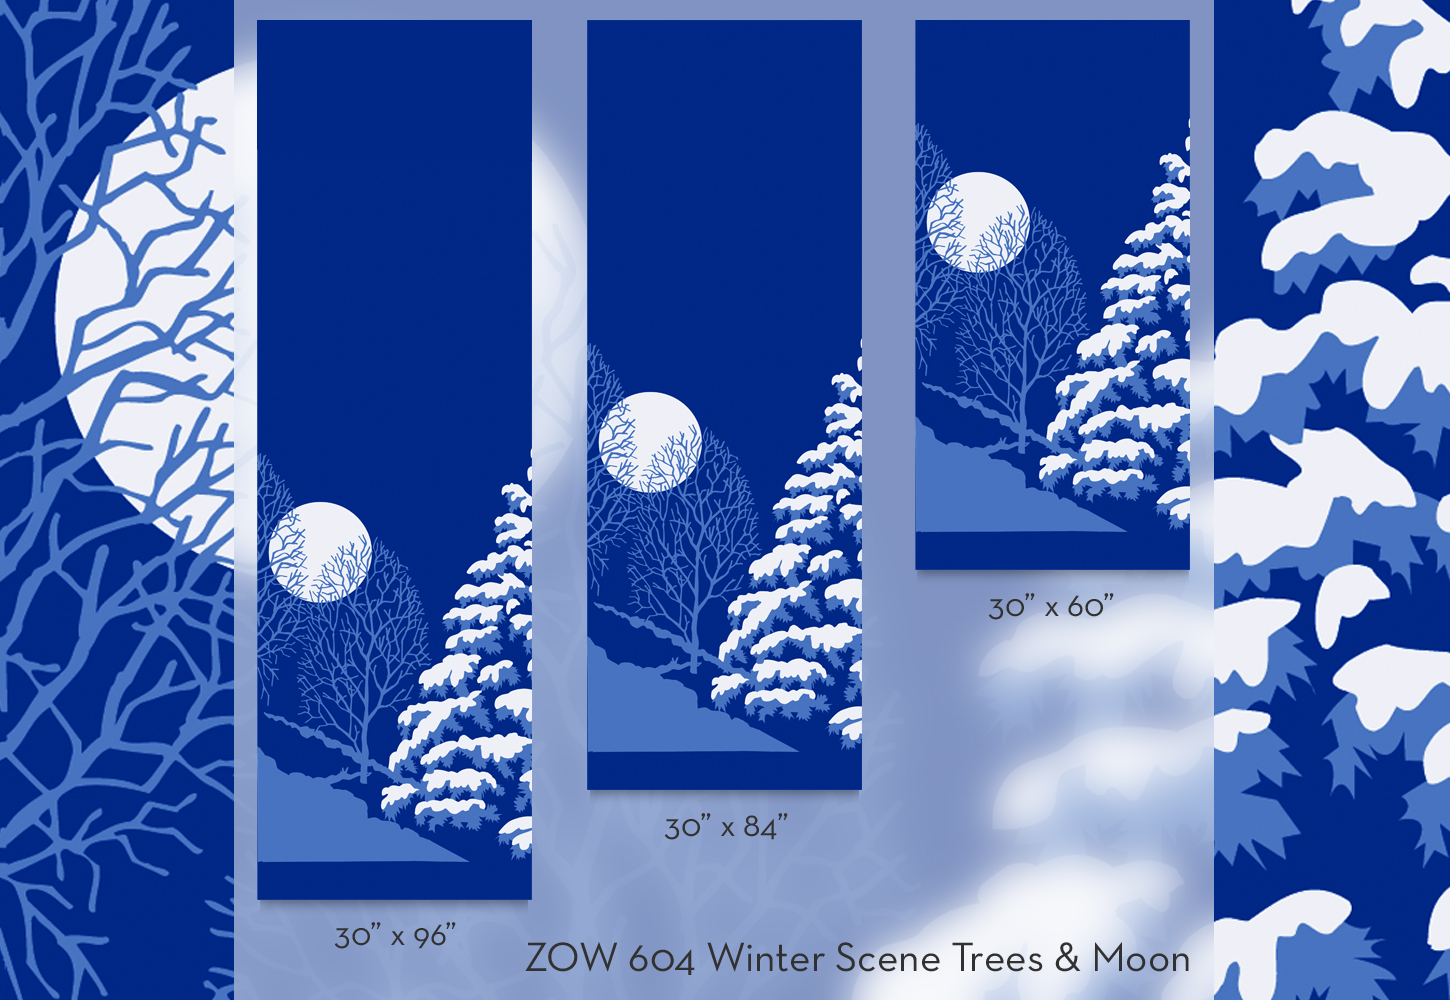 ZOW 604 Winter Scene Trees & Moon